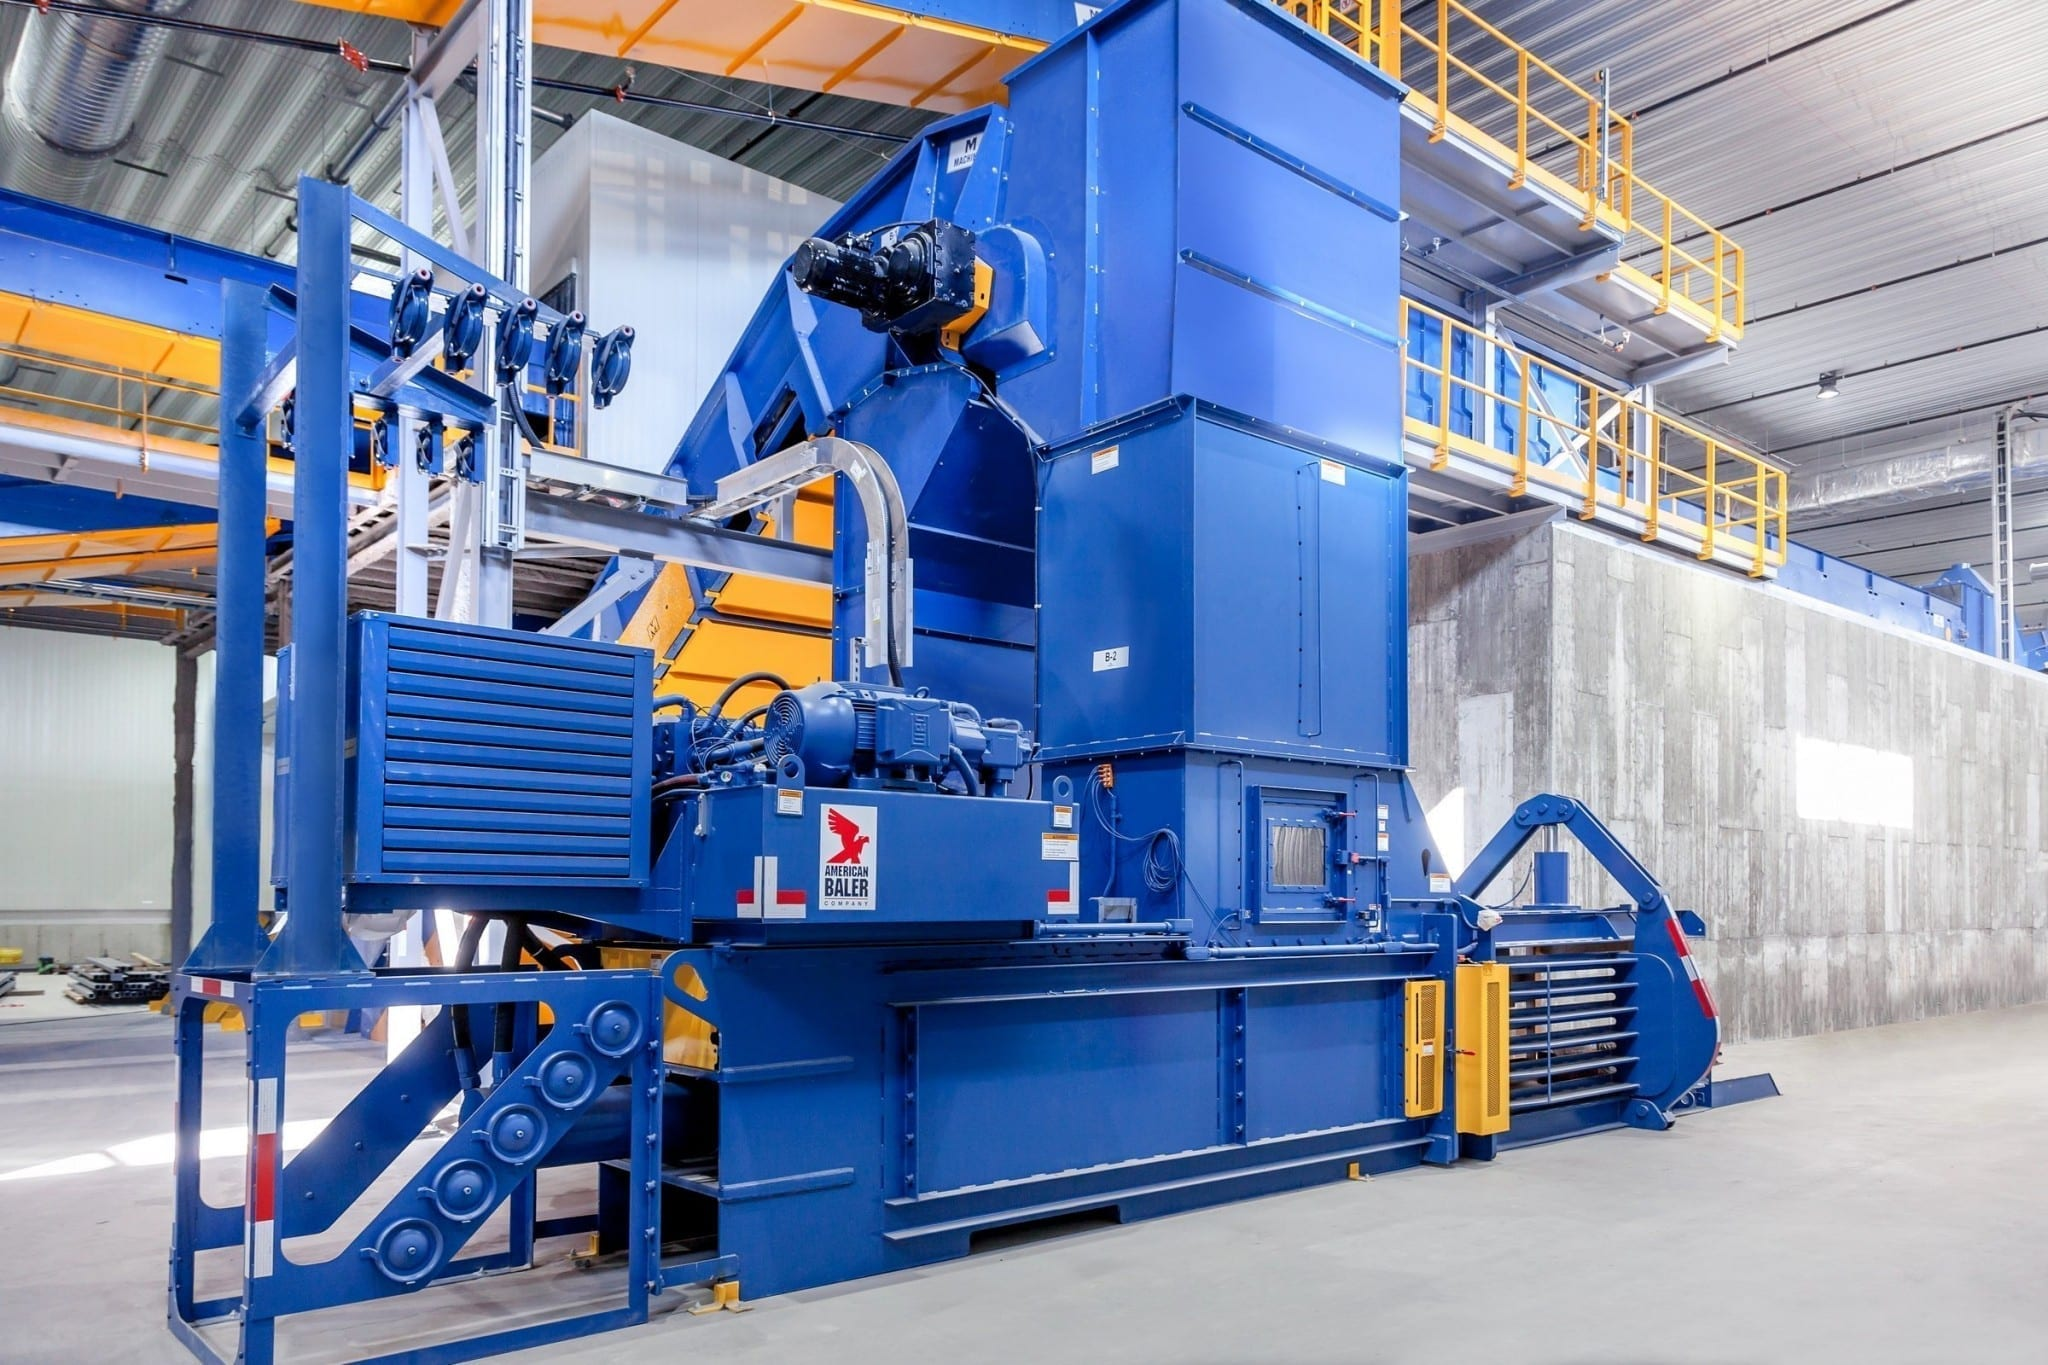 American Wire Tie : Machinex recycling products balers and wires